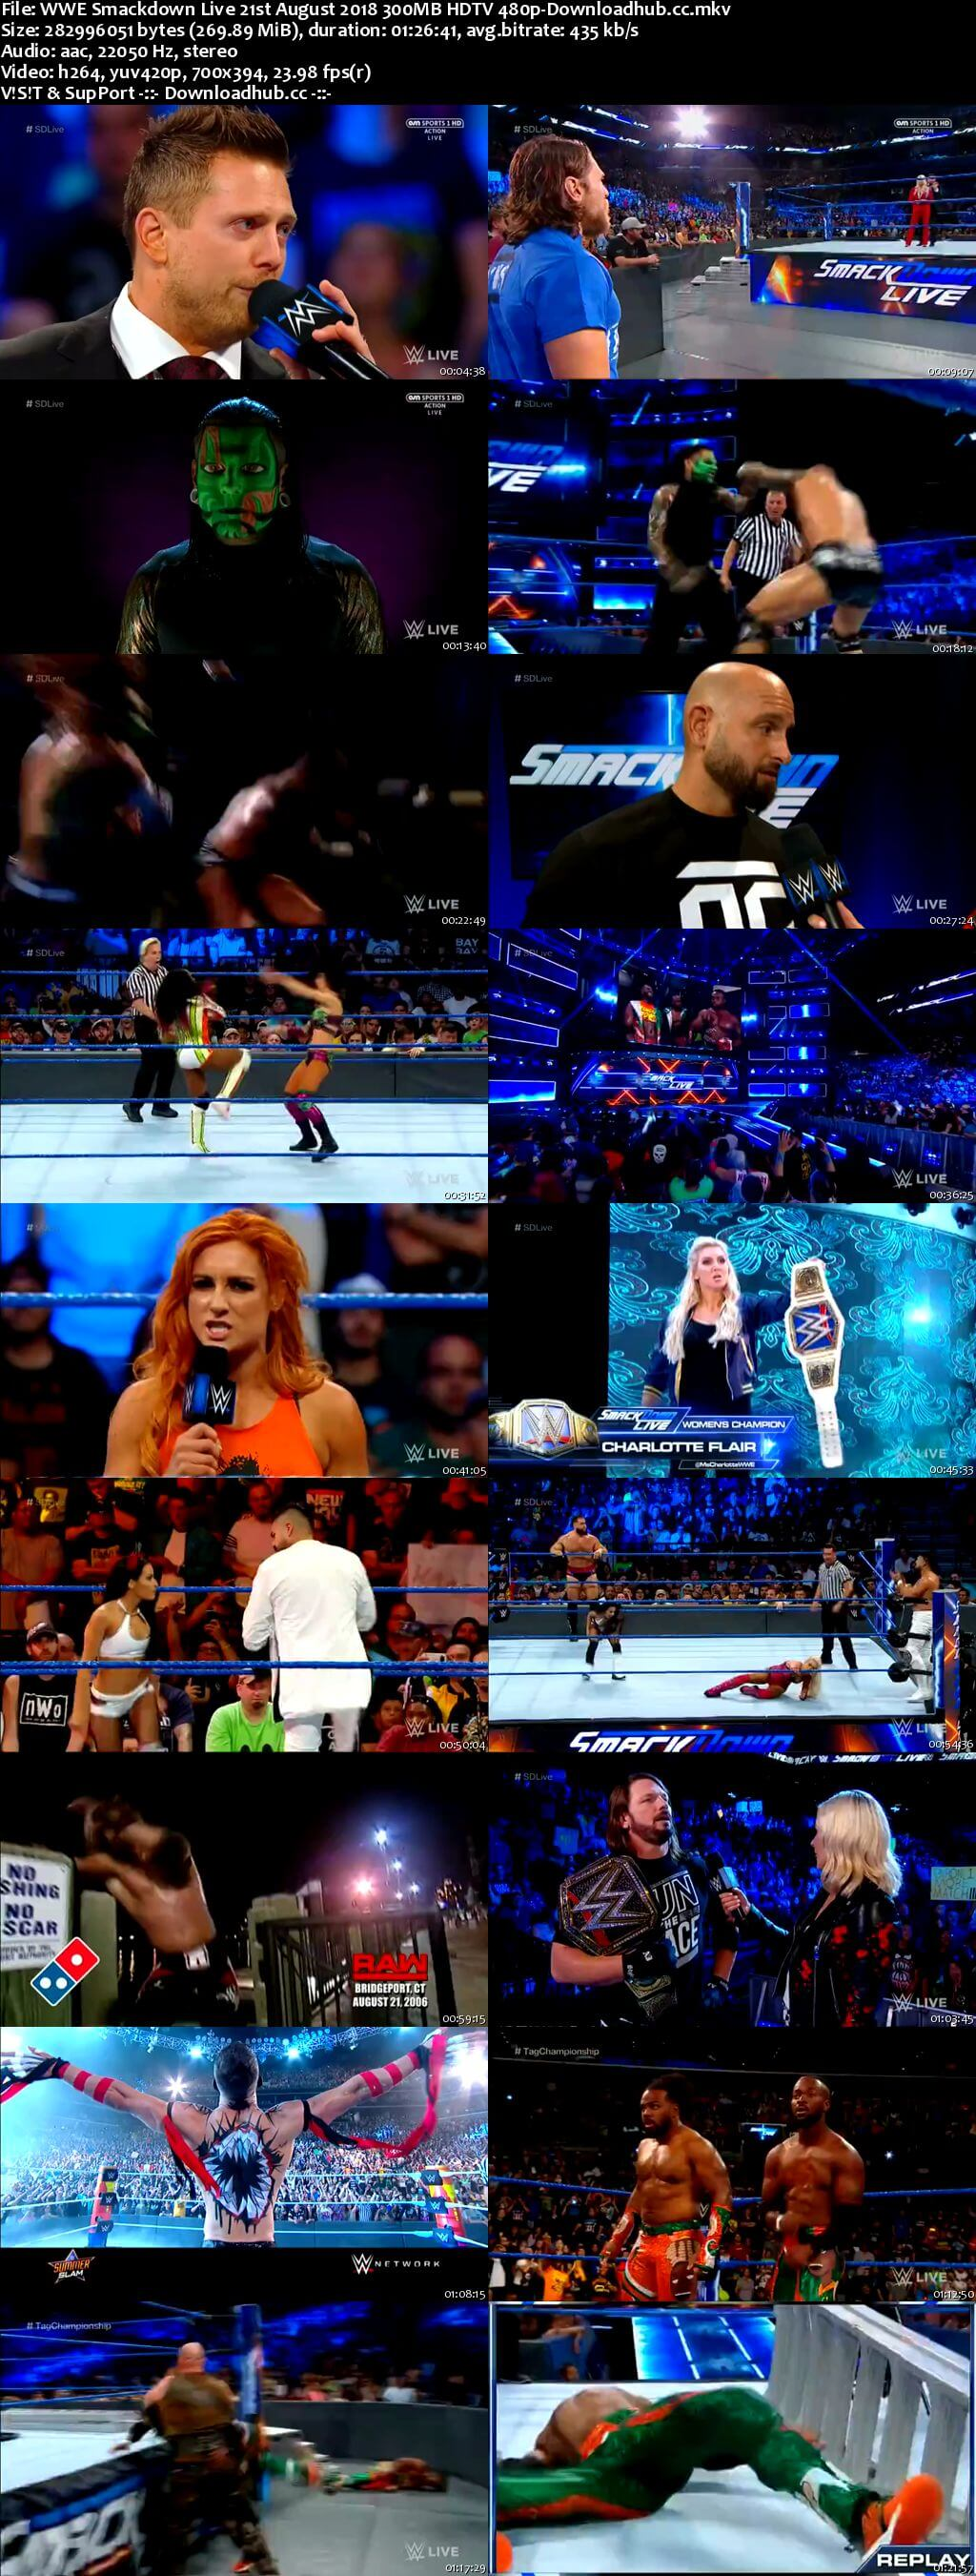 WWE Smackdown Live 21 August 2018 480p HDTV Download